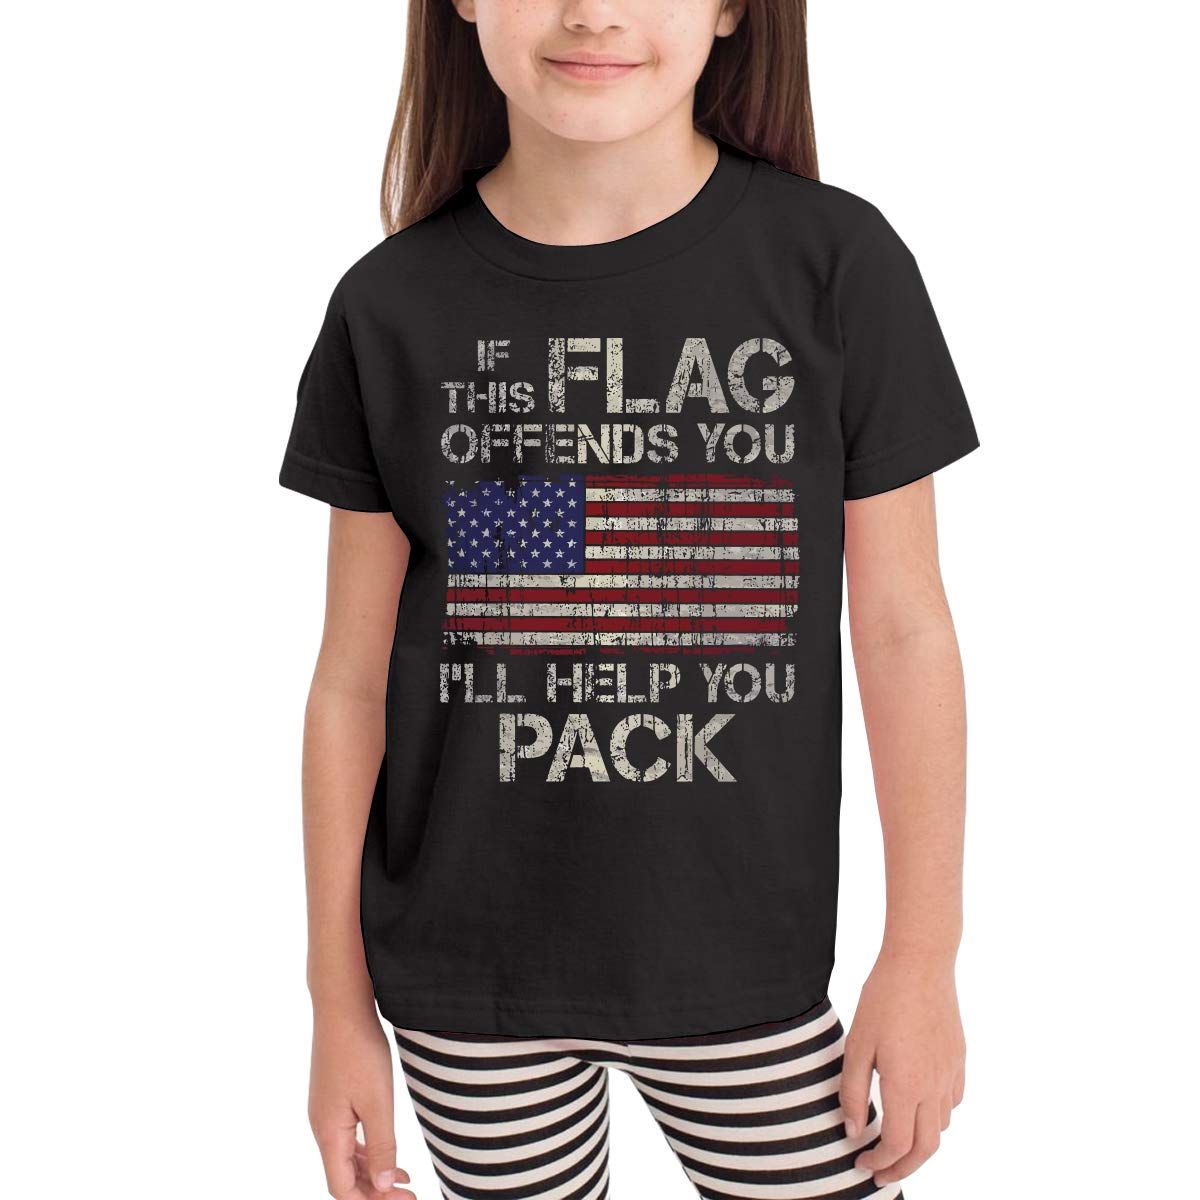 Ill Help You Pack Short Sleeve Tops Funny Crew Neck Tee Toddler Baby If This Flag Offends You